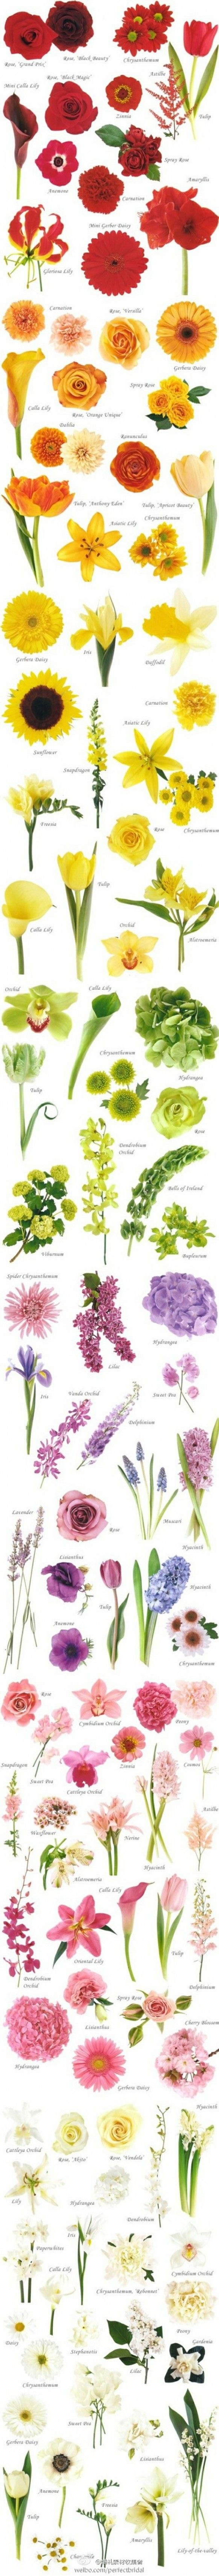 Wedding Bouquets - Every Bride needs to look at this so they can figure out exactly what type of flowers they want!